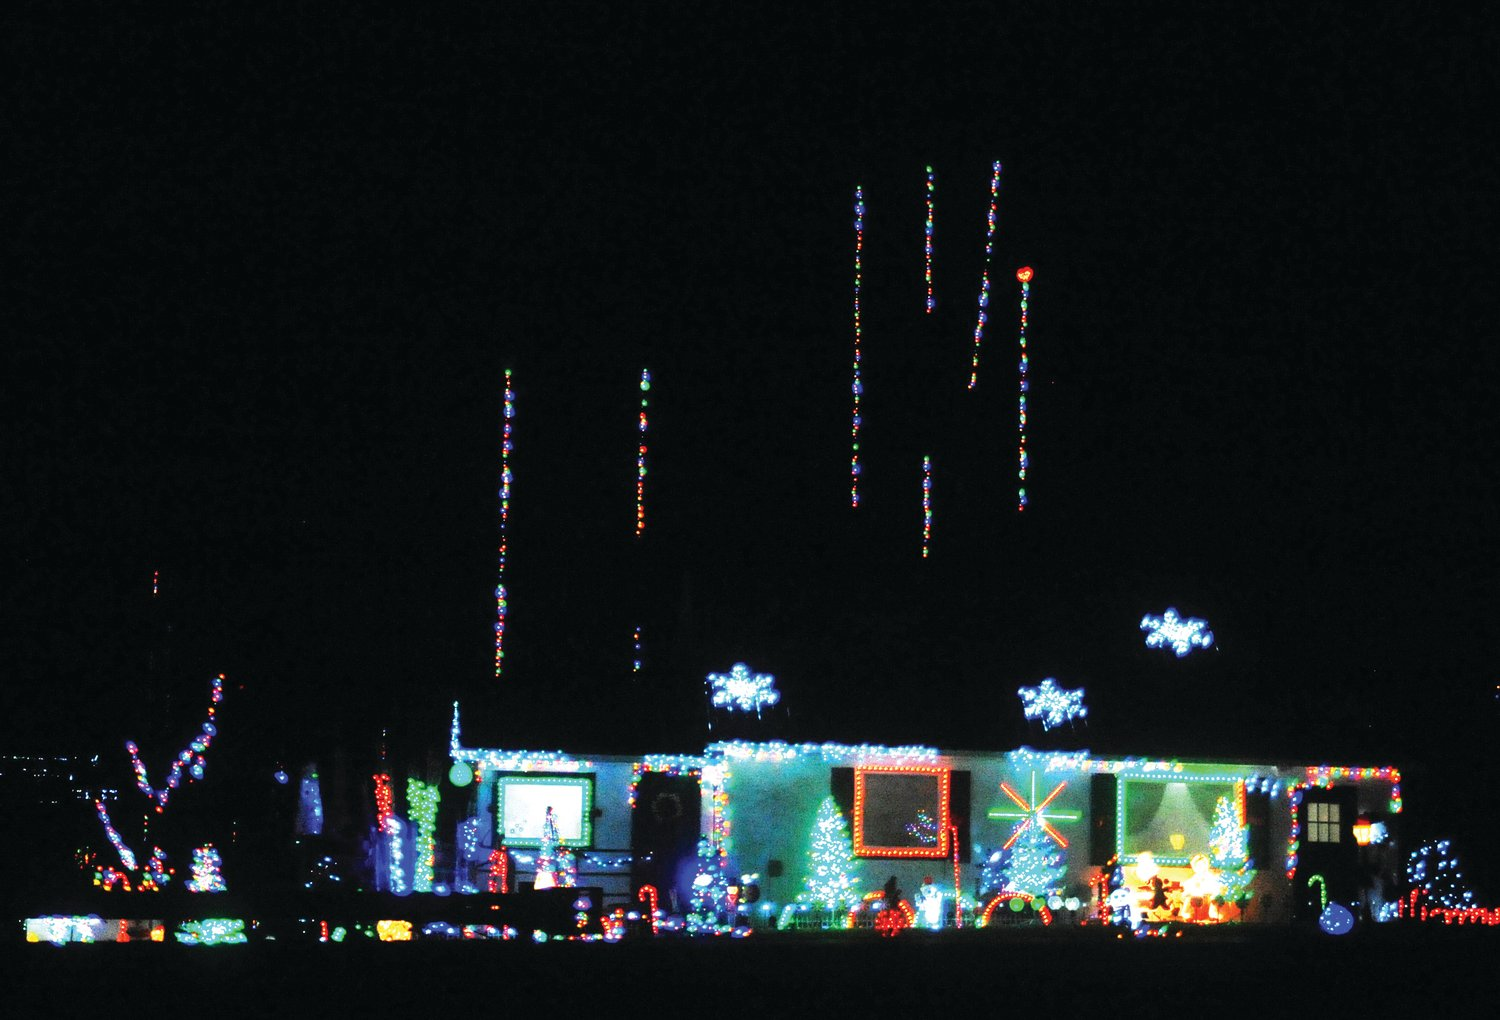 The Johnson family carries out their yearly tradition of bringing joy to the community by decorating their yard for with festive lights. The straight lines of lights were shot onto the treetops with a variety of methods, such as a potato gun or a drone. This year they used an arborist slingshot.